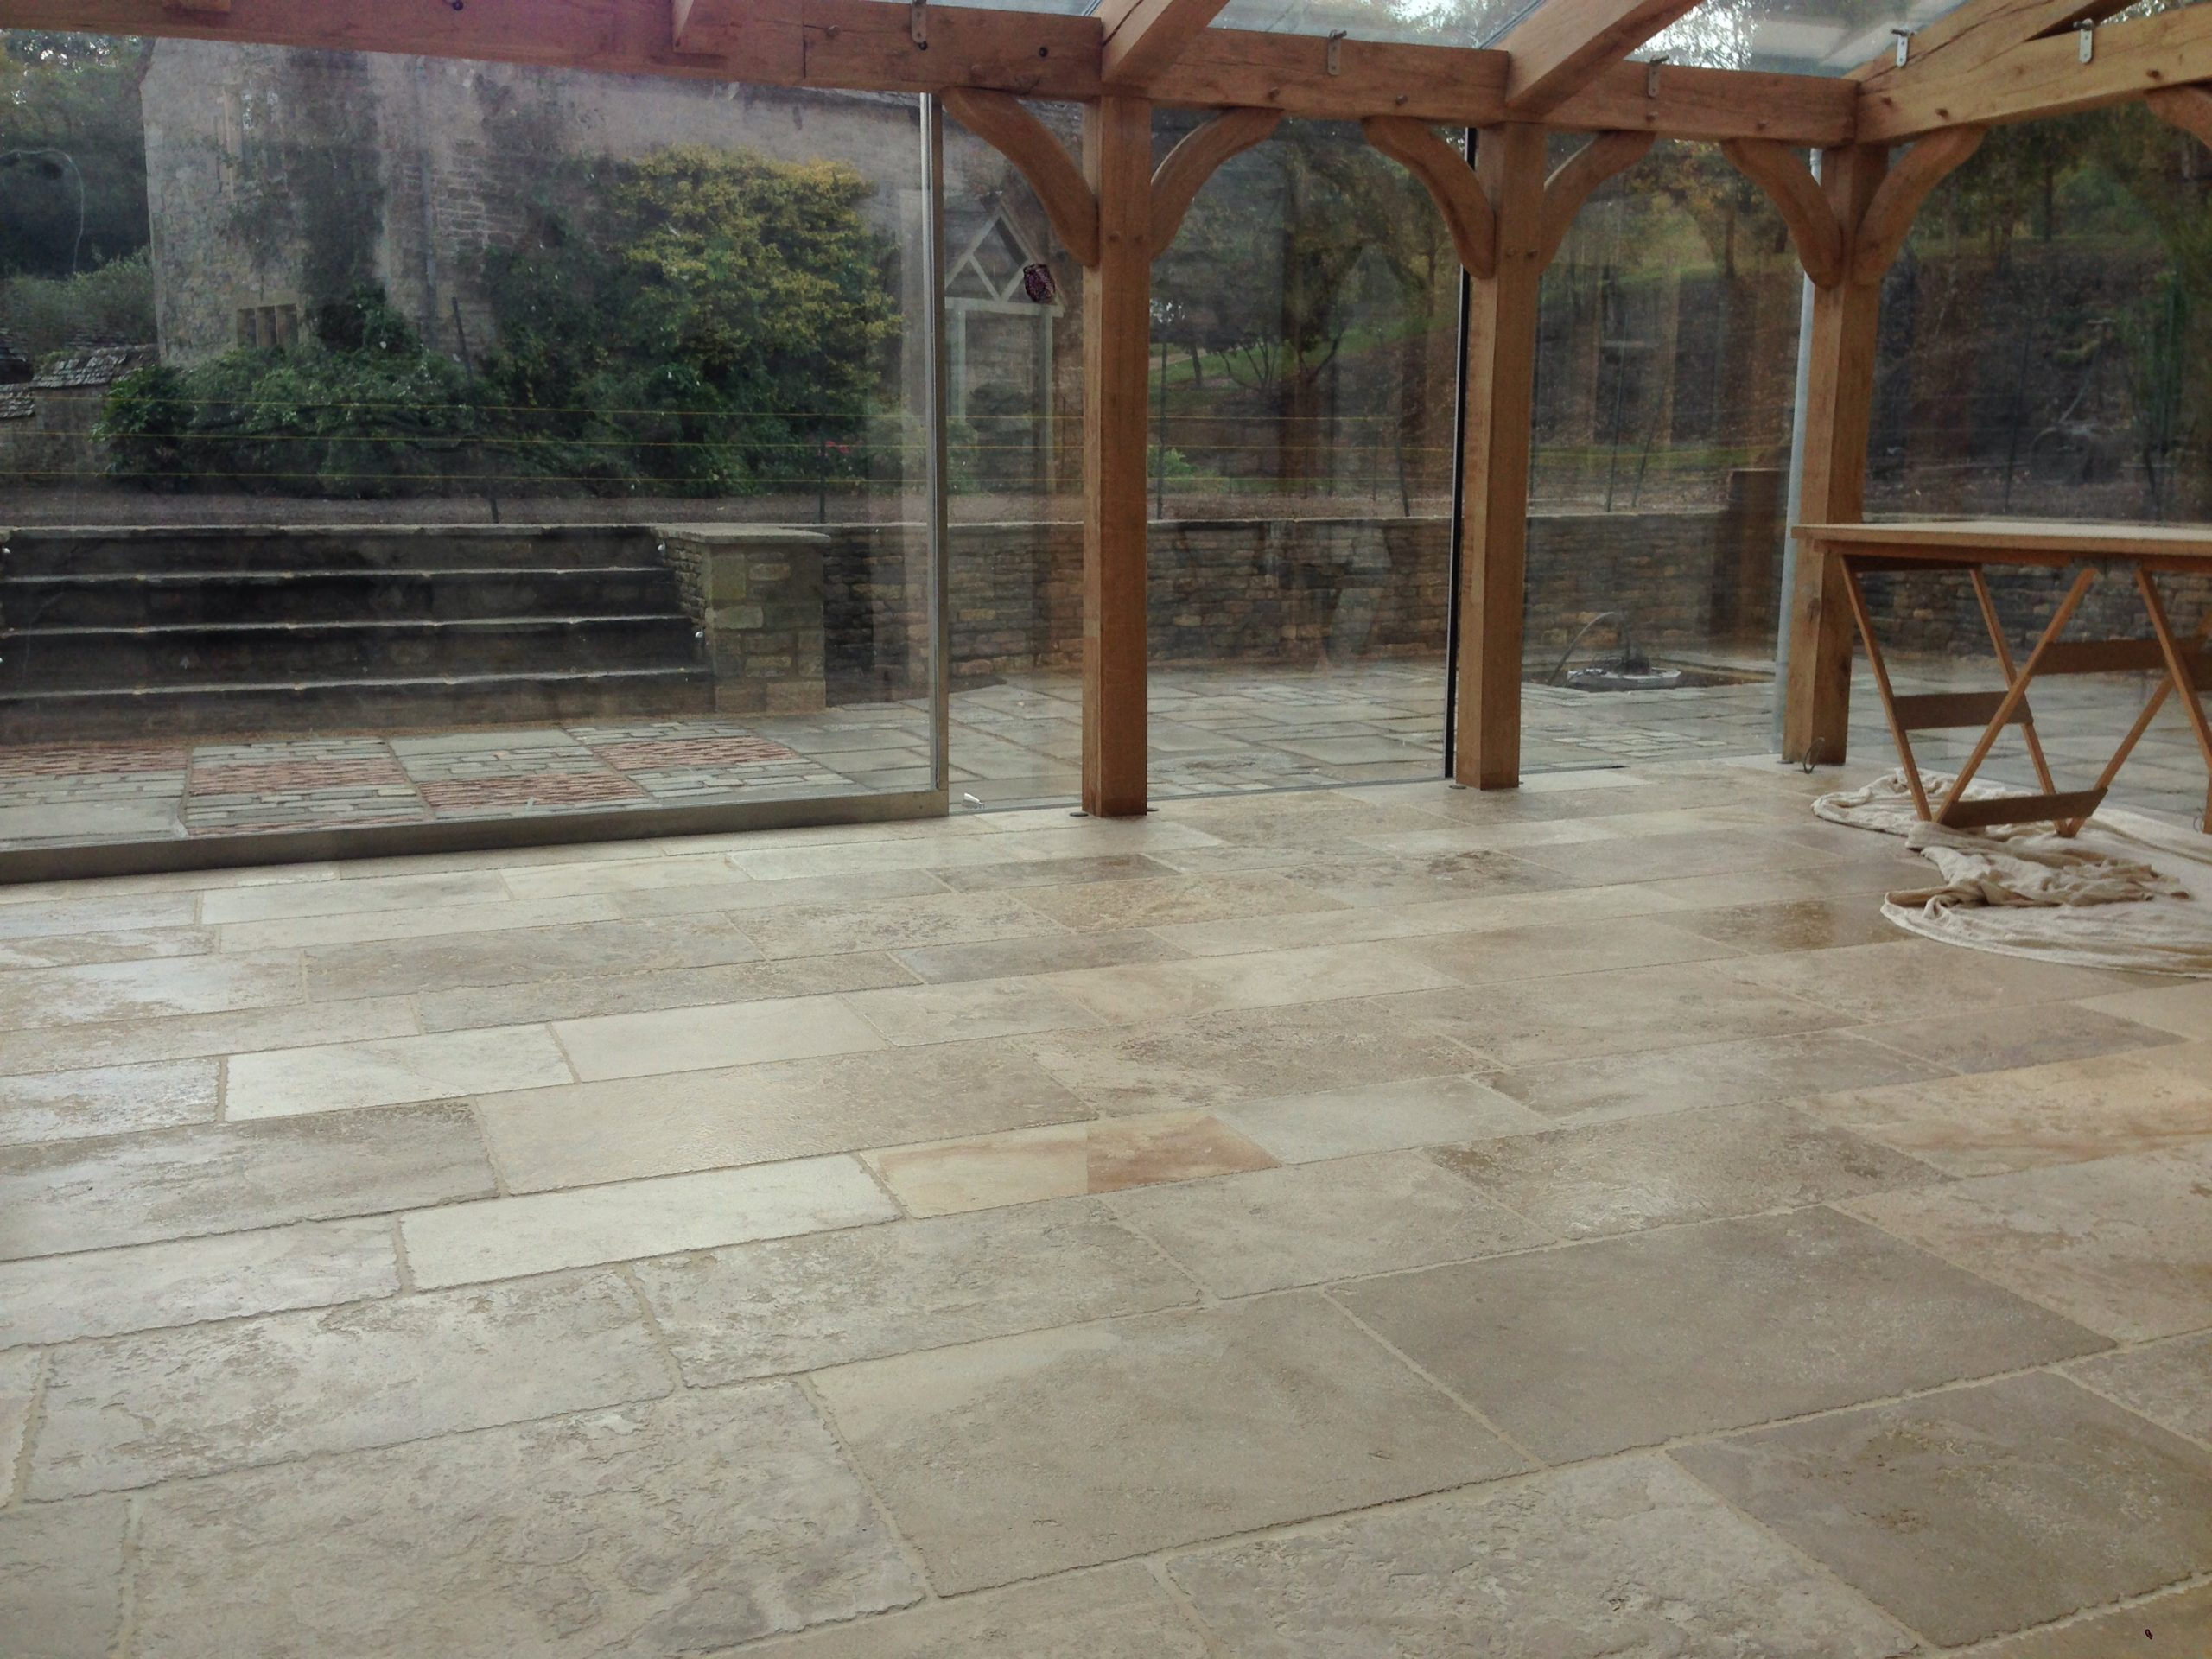 Cleaners archives cotswold stone floor cleaners treated tiles closest to the glazing dailygadgetfo Images